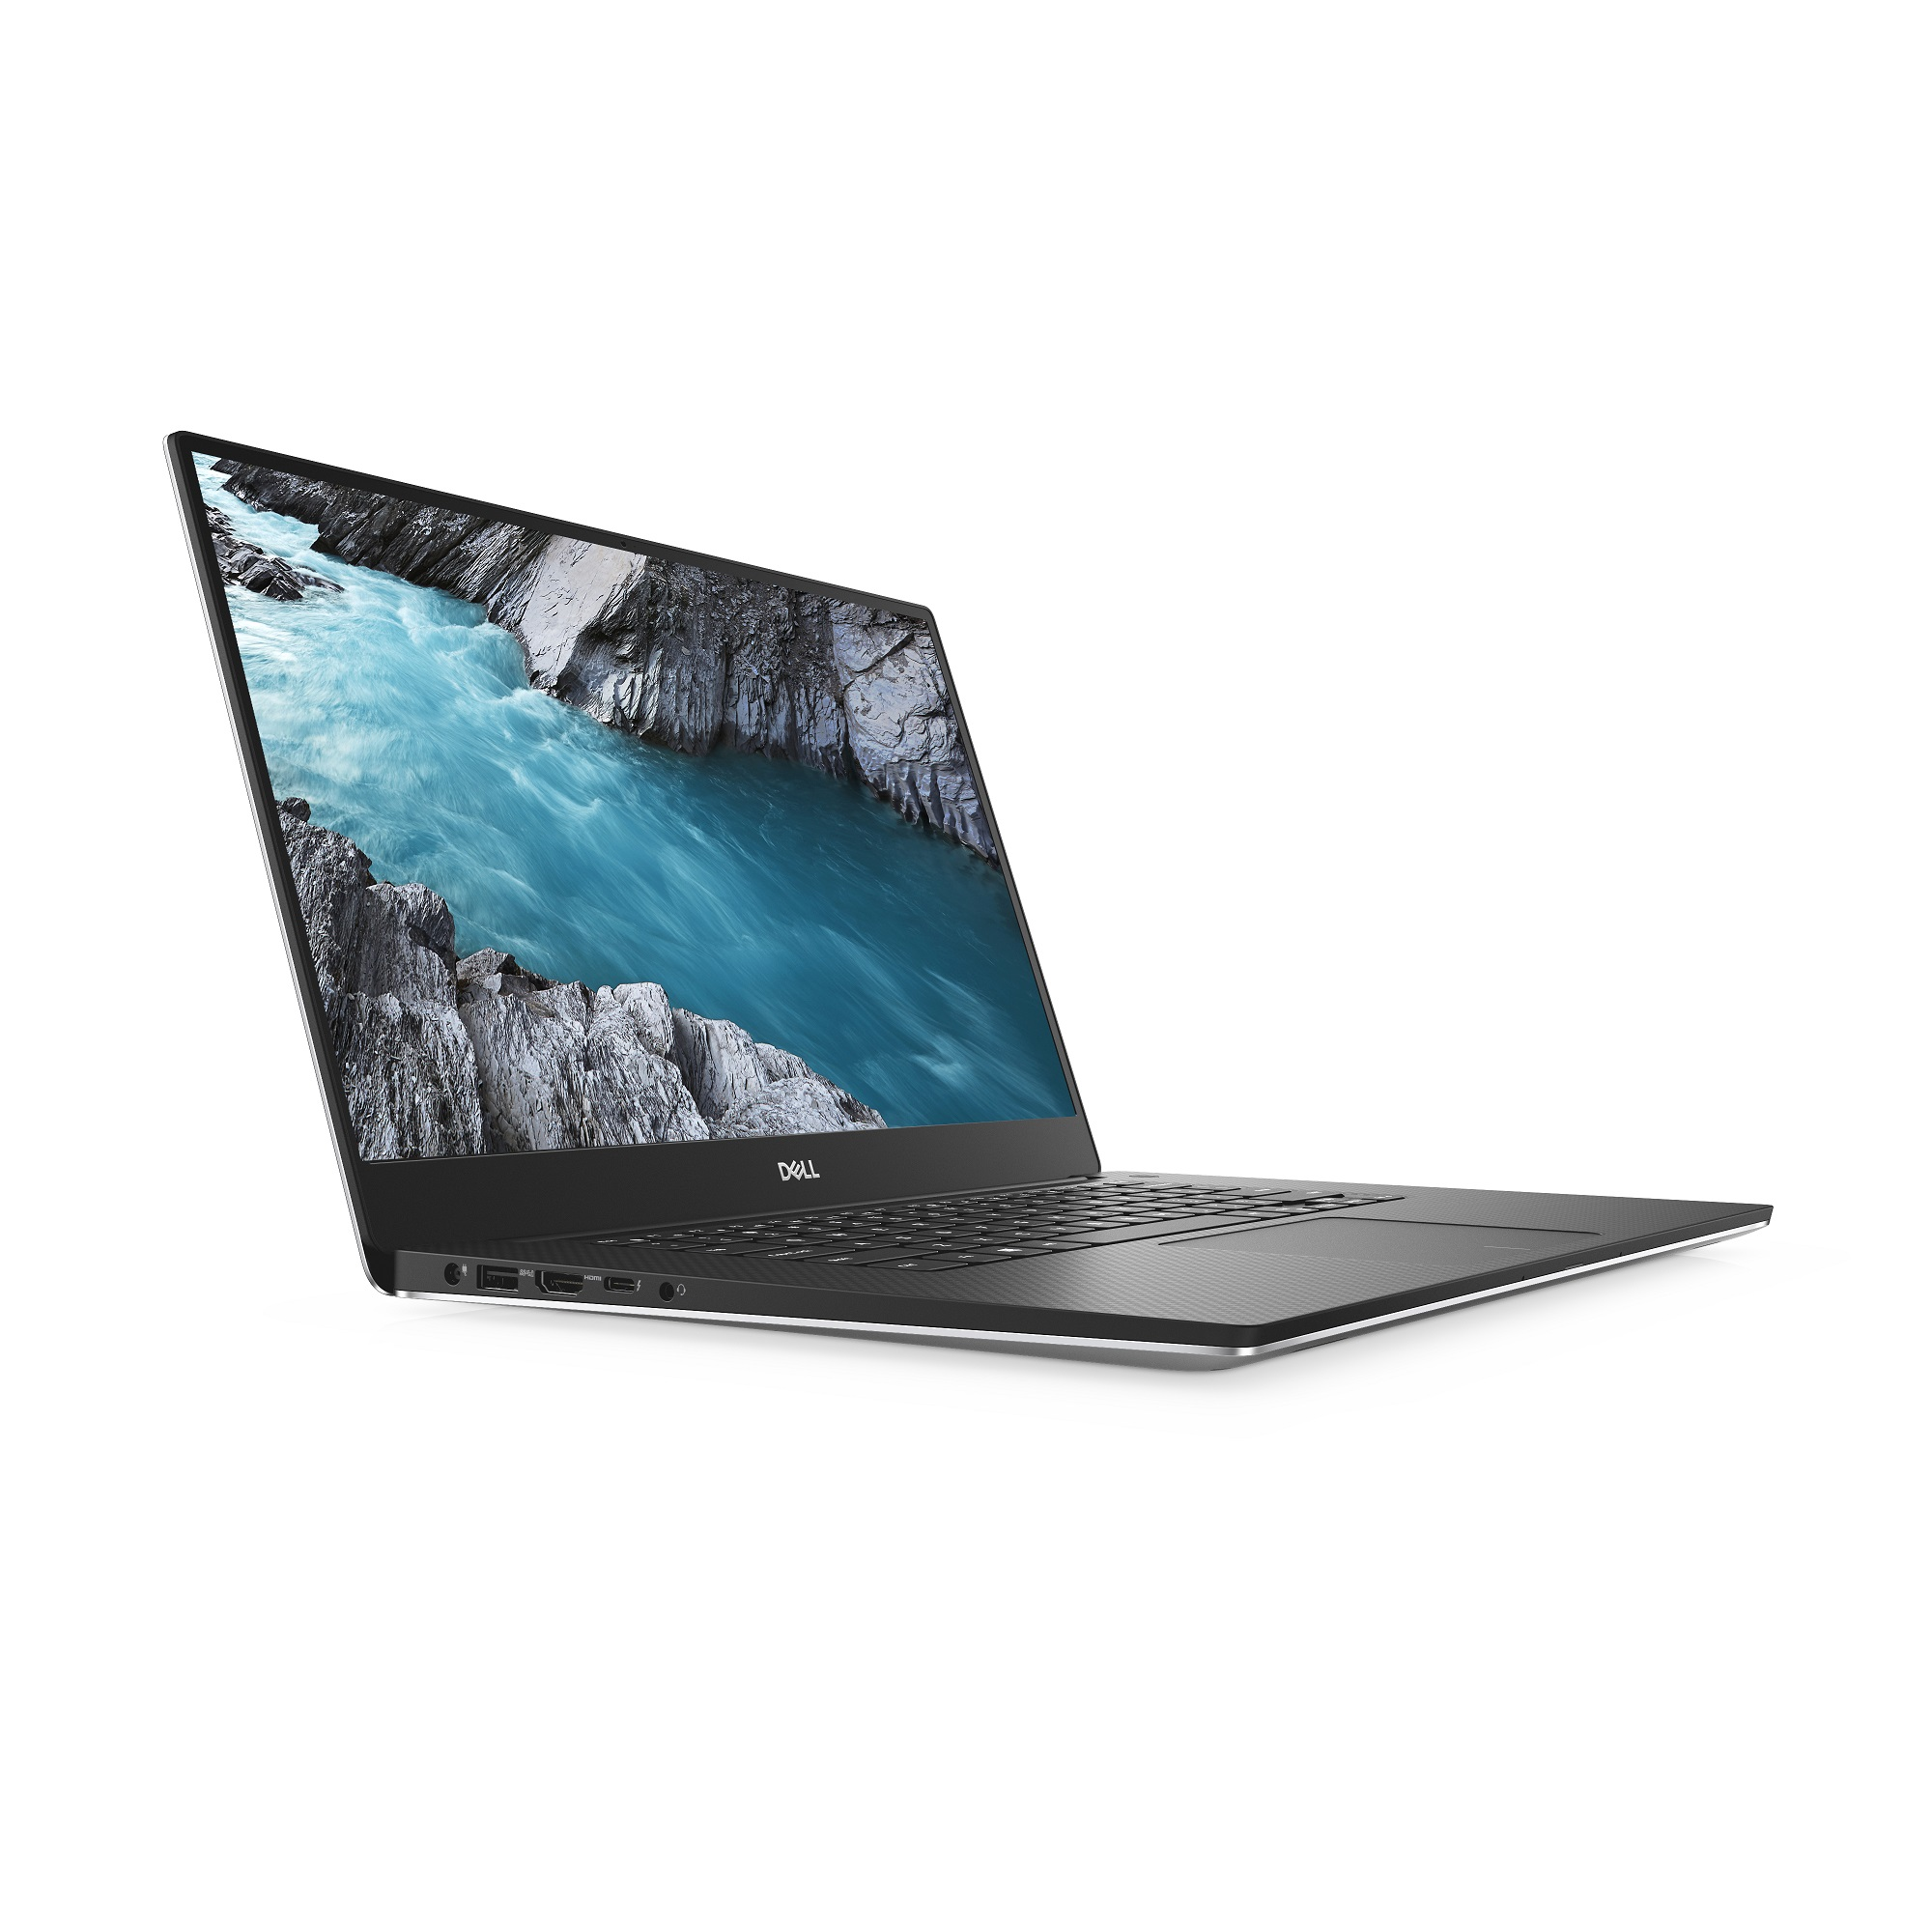 Laptop DELL XPS 7590 15,6'' FHD HS LED i7-9750H 8GB 512GB SSD GTX1650 BK FPR Win10P 3YNBD